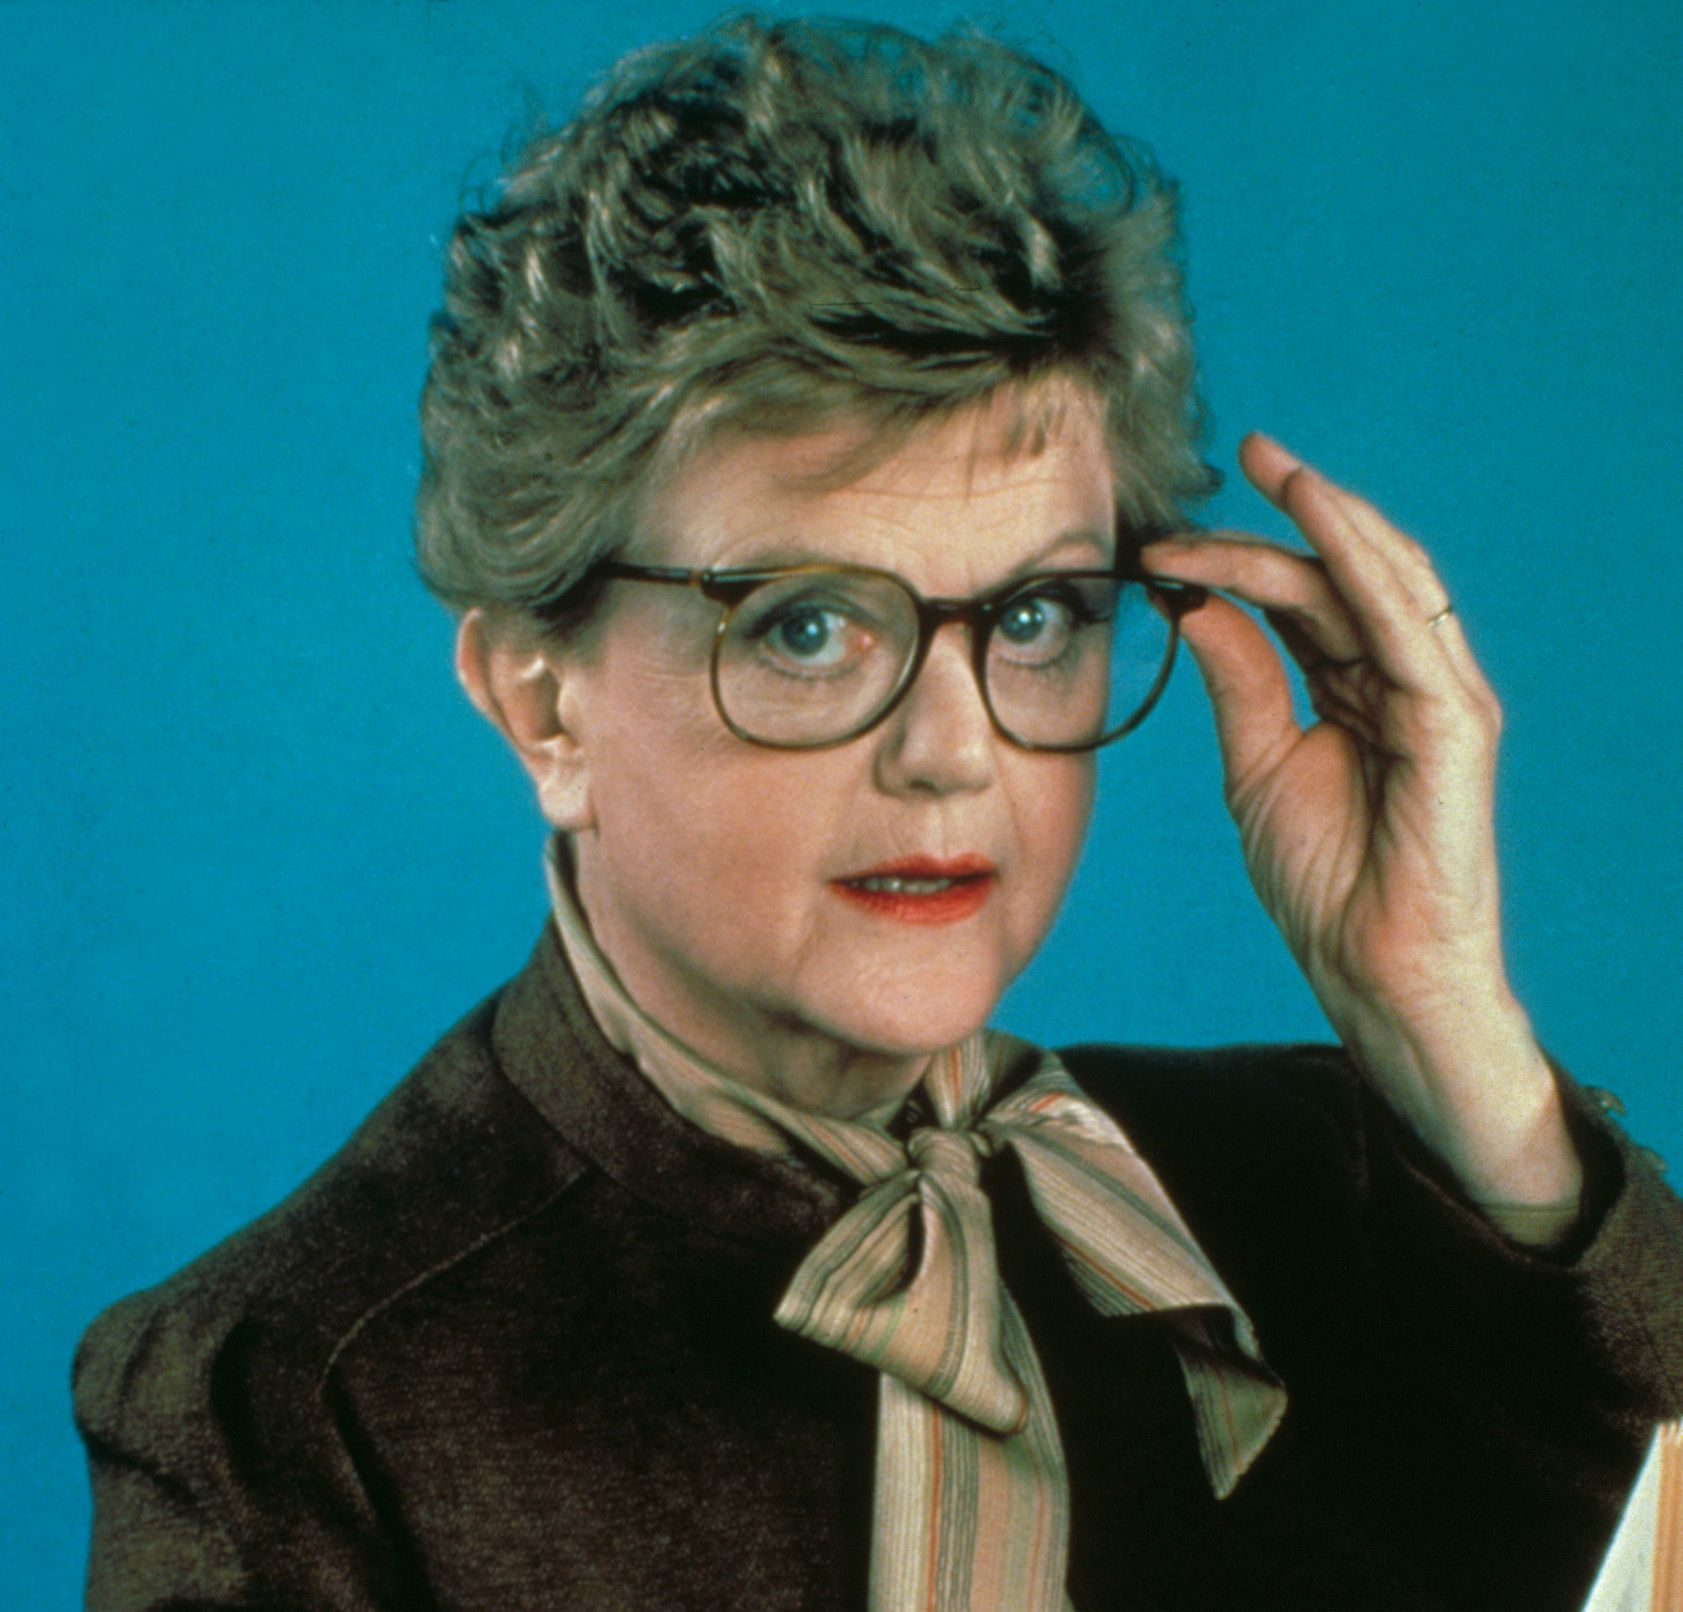 12 3 e1604924730887 20 Facts We Wrote About Murder, She Wrote